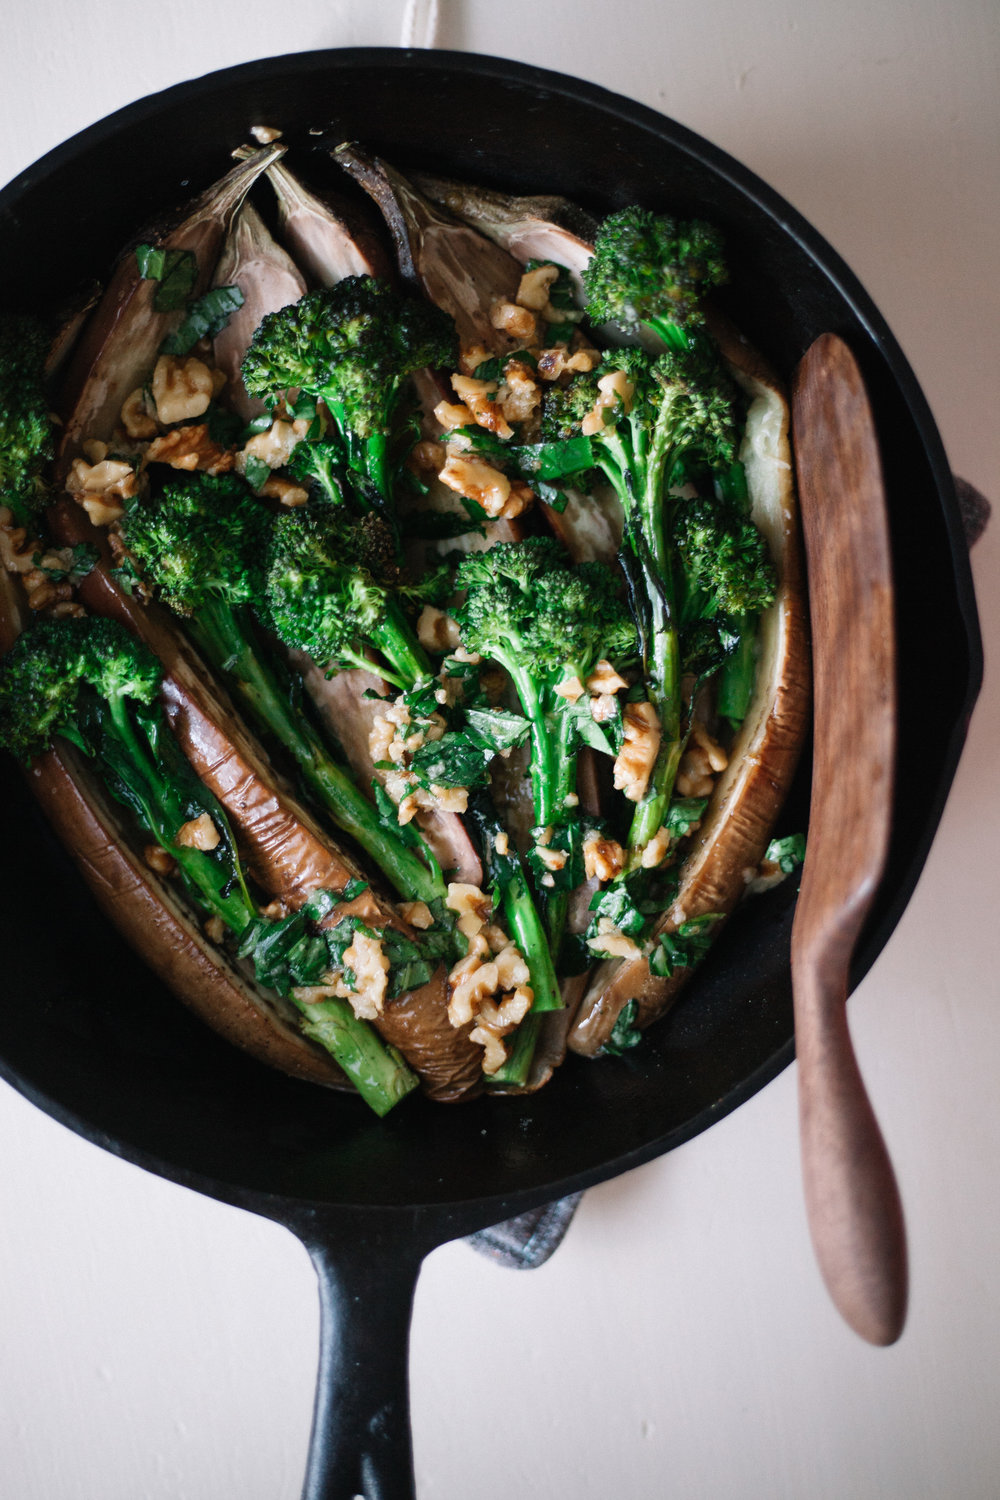 Roasted Eggplant + Broccolini | Marina Gunn